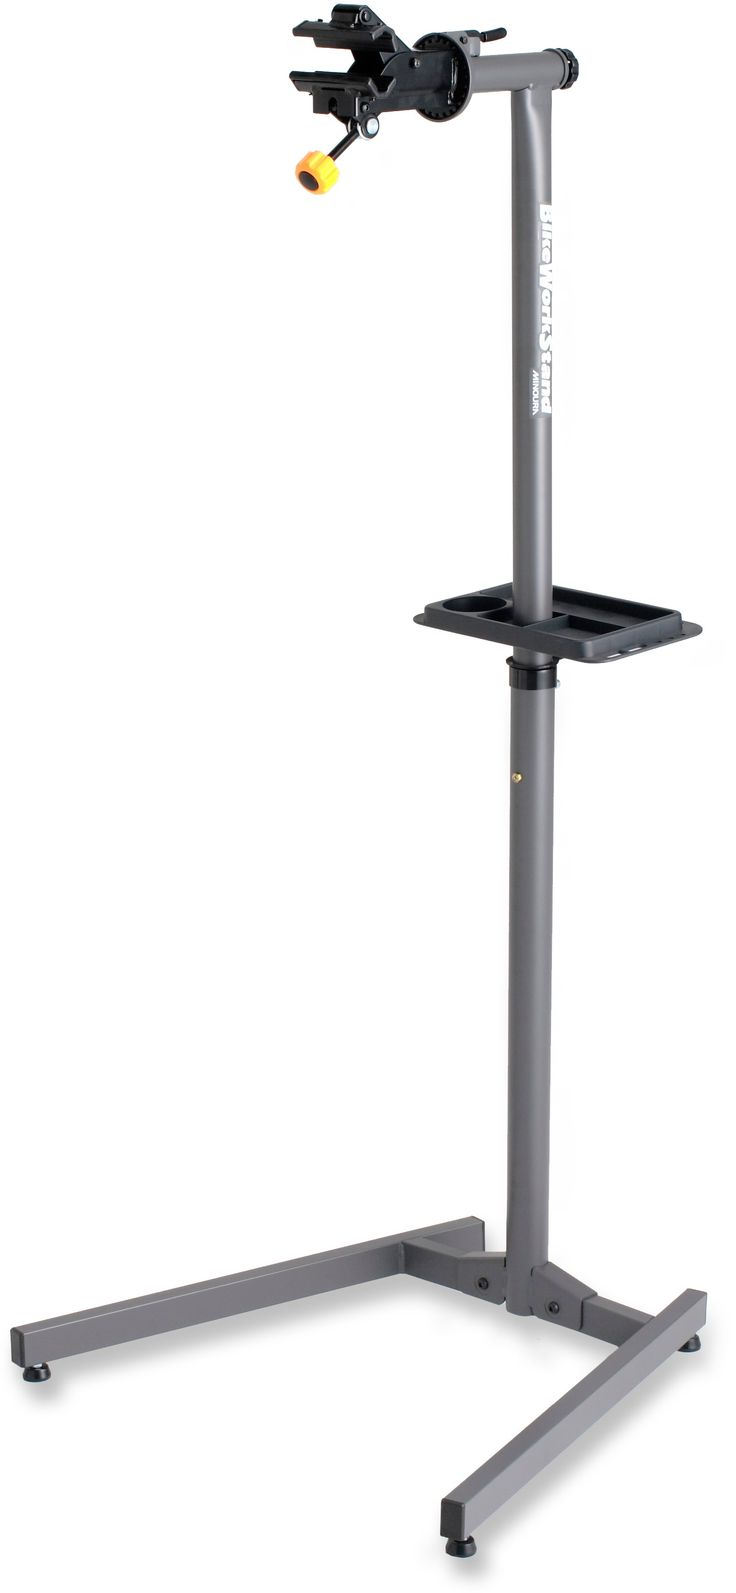 Minoura W-3100 Bike Repair Stand with Tool Tray at REI.com